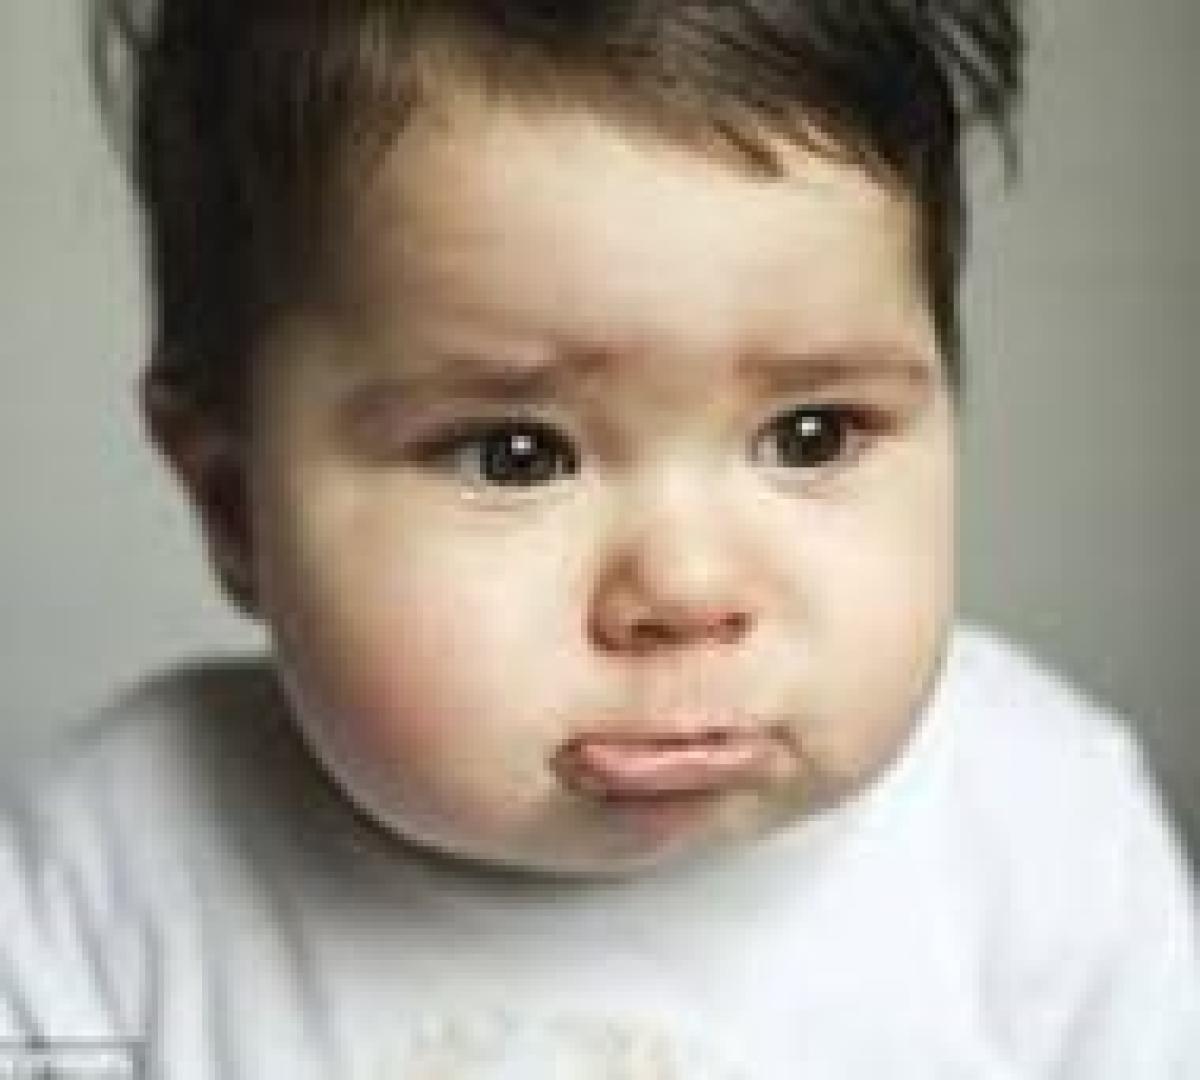 Baby's cry can alter the way parents think: study